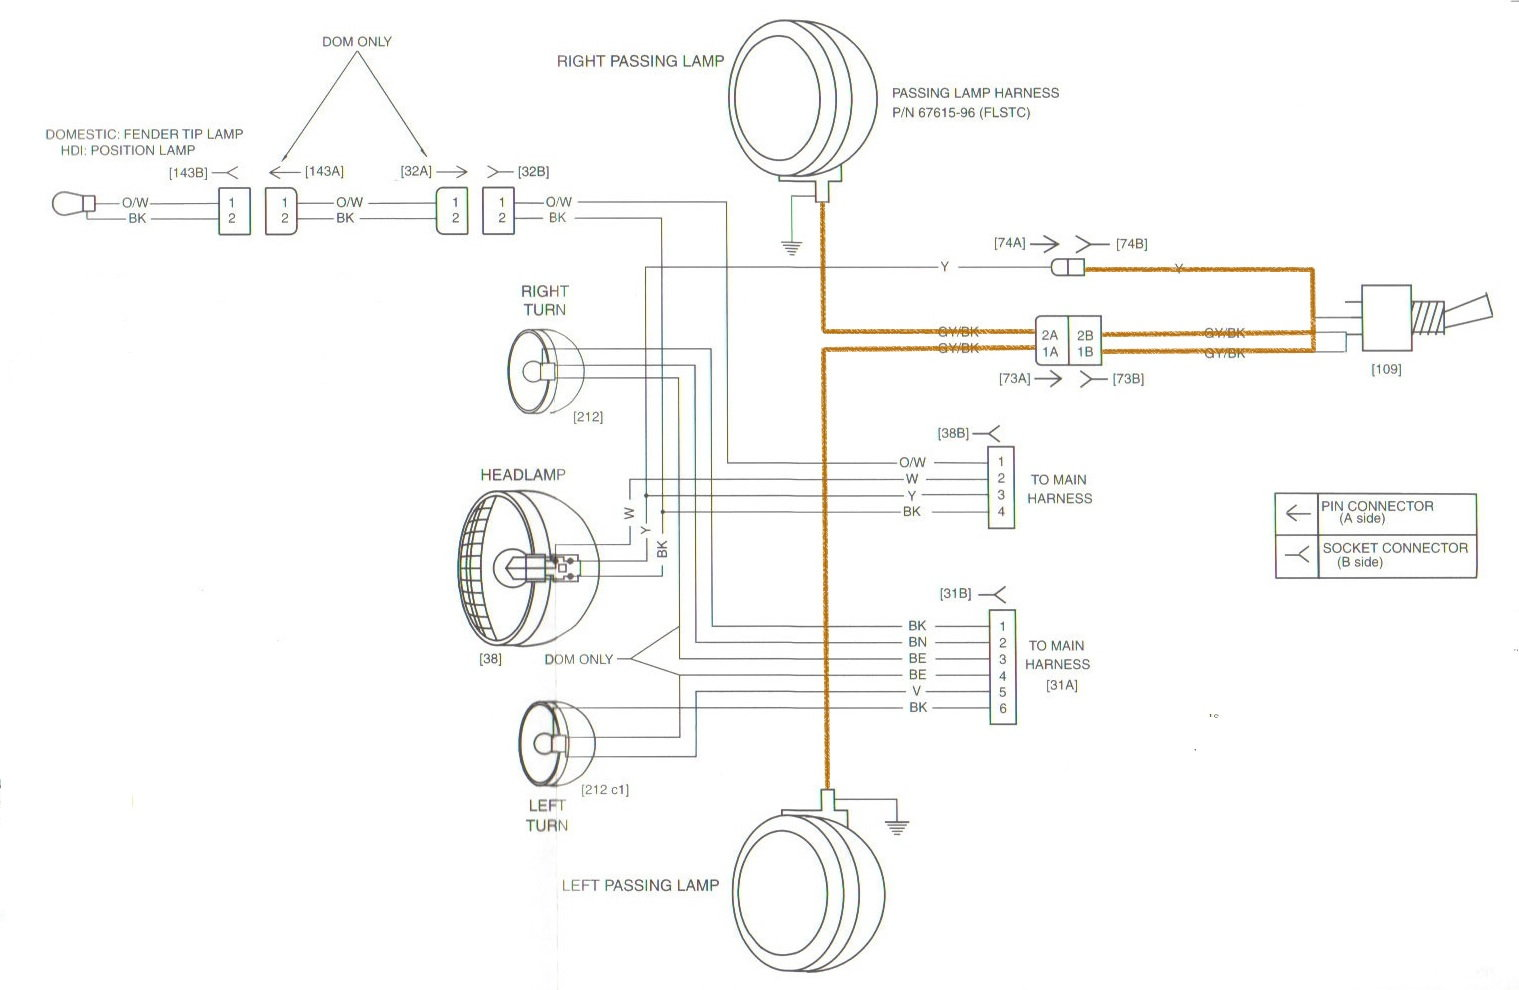 Auxiliary Light Wiring Diagram from cimg3.ibsrv.net